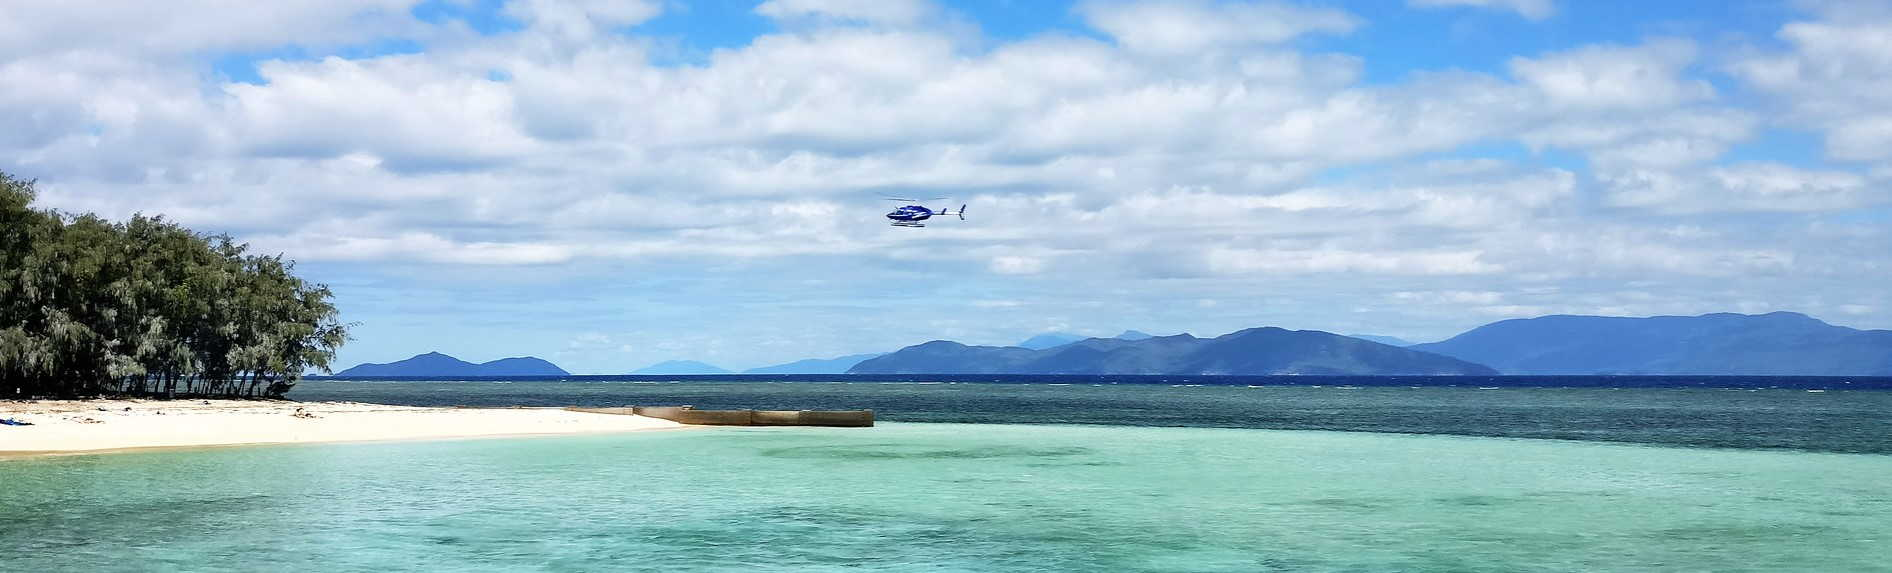 The Great Barrier Reef is Ready to Explore